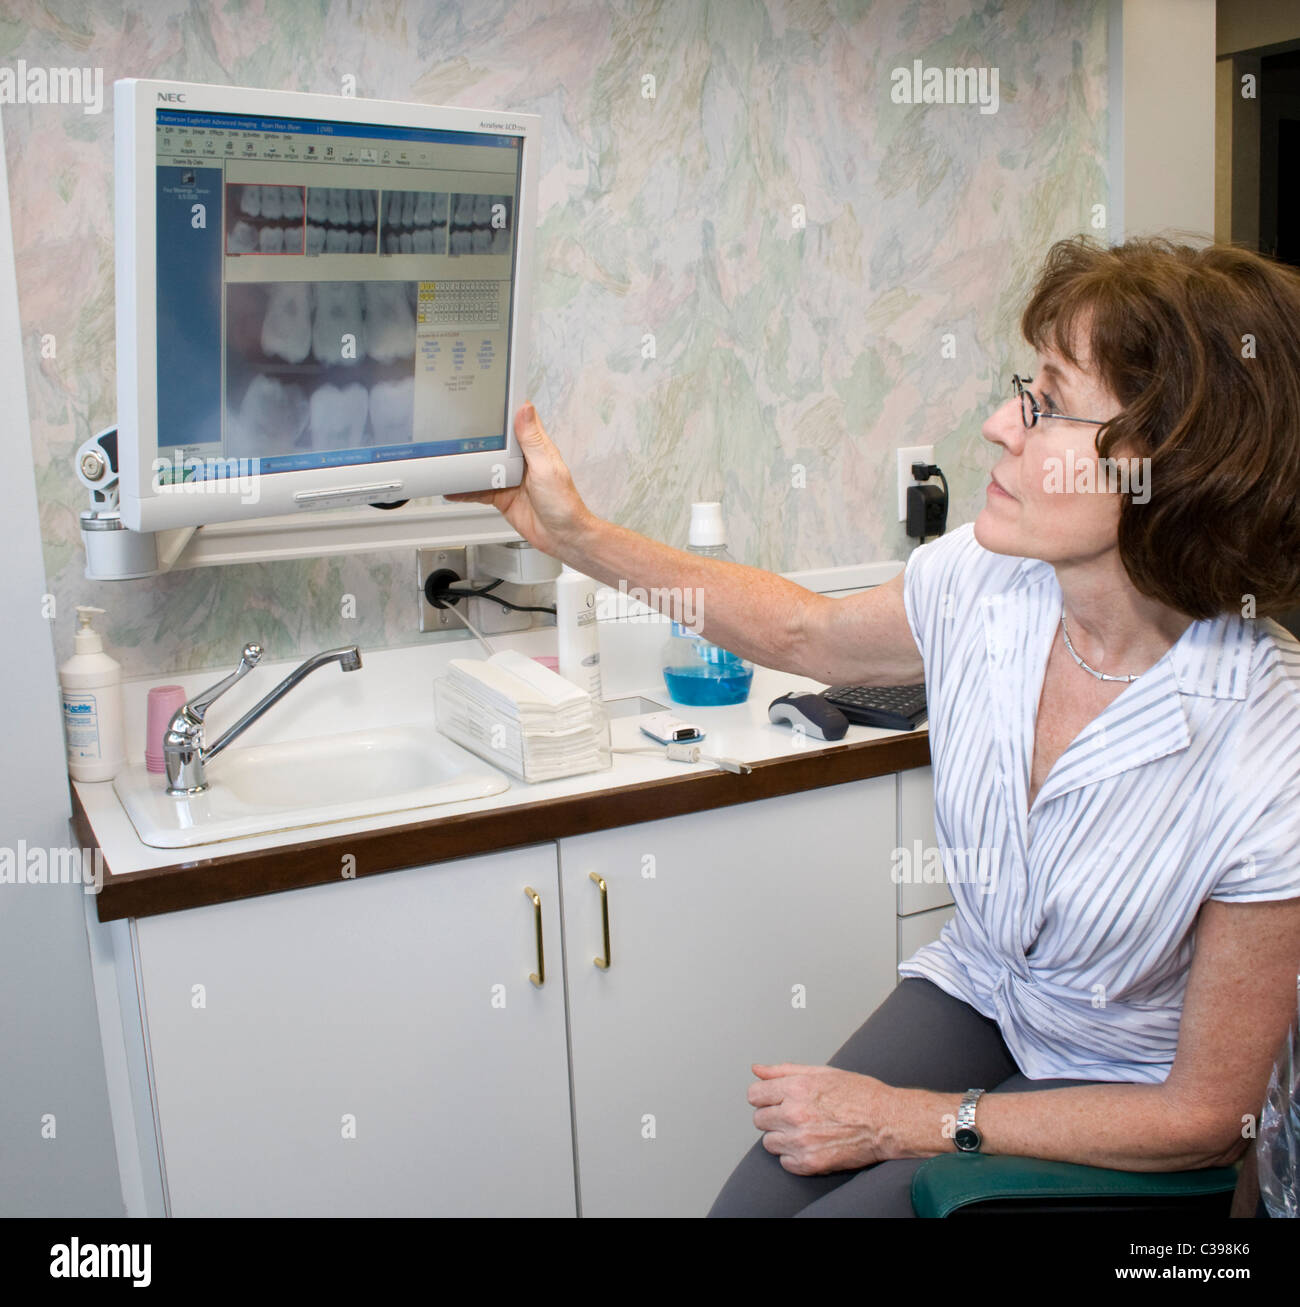 Woman dentist studying a patient's teeth on the computer screen. St Paul Minnesota MN USA - Stock Image